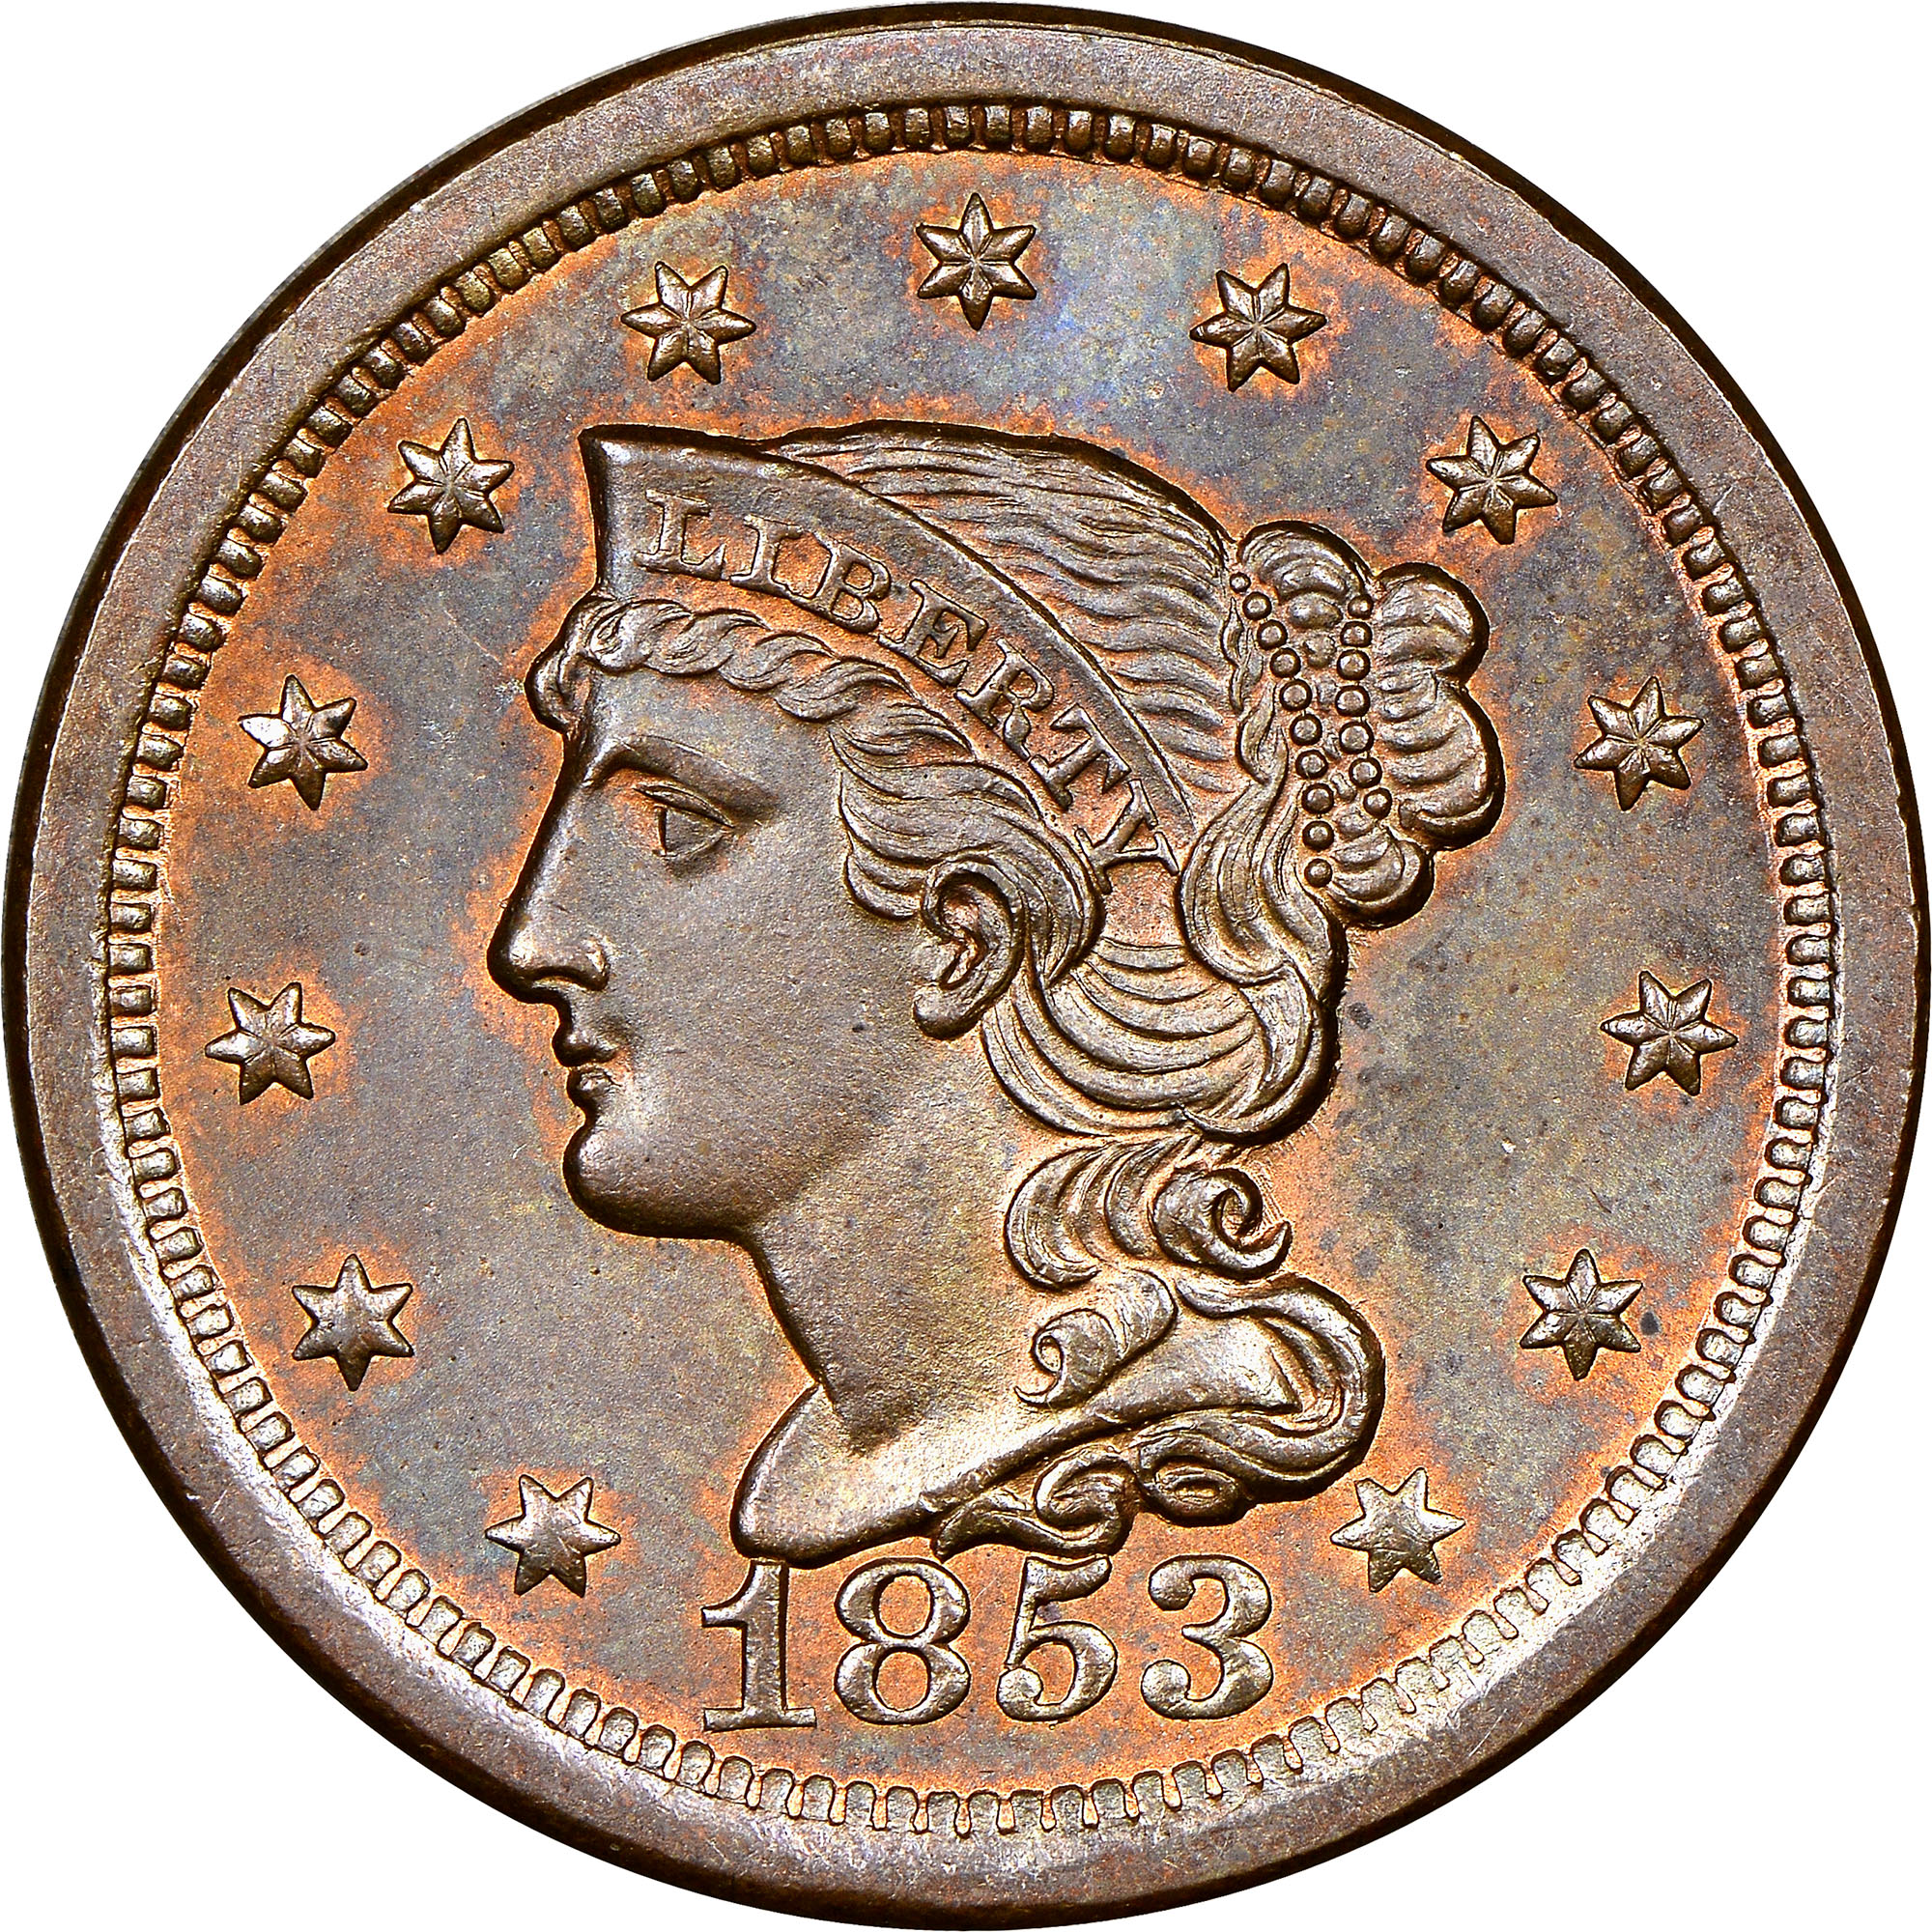 100 Images of 1853 One Cent